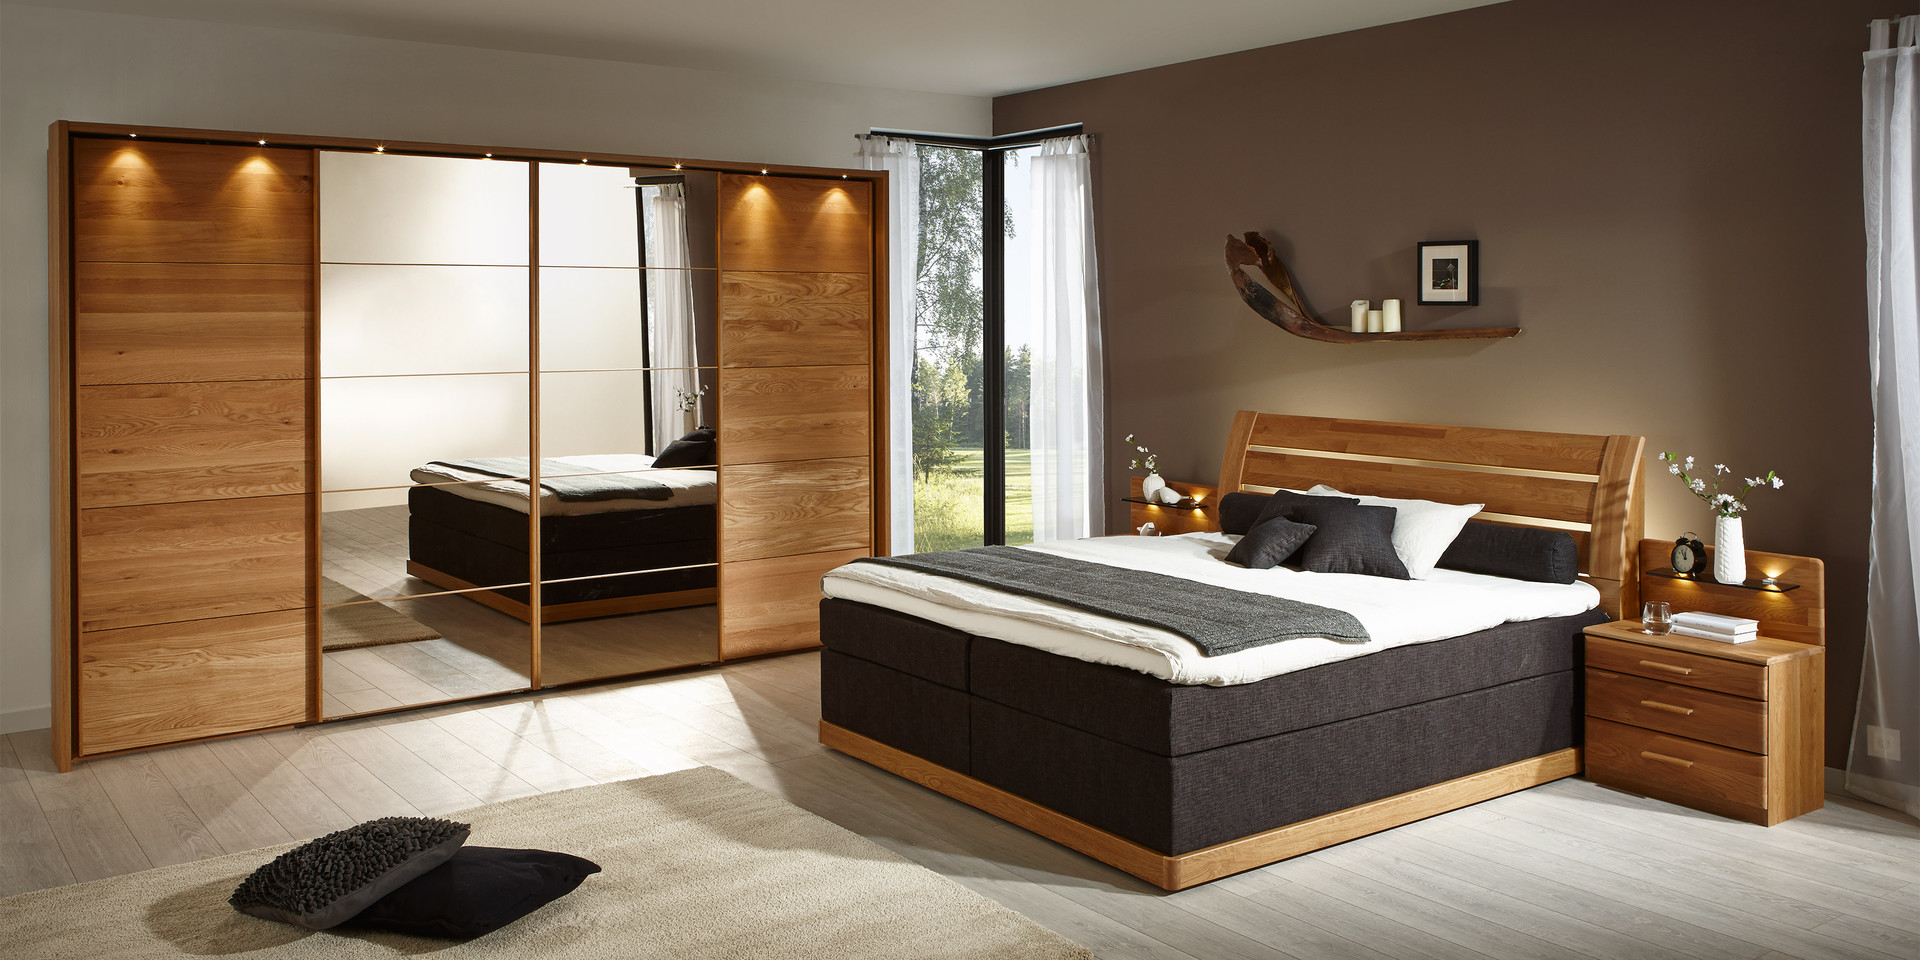 schlafzimmer modern holz kleiderschr nke f r dachschr ge trecker bettw sche normalgr e ma e. Black Bedroom Furniture Sets. Home Design Ideas